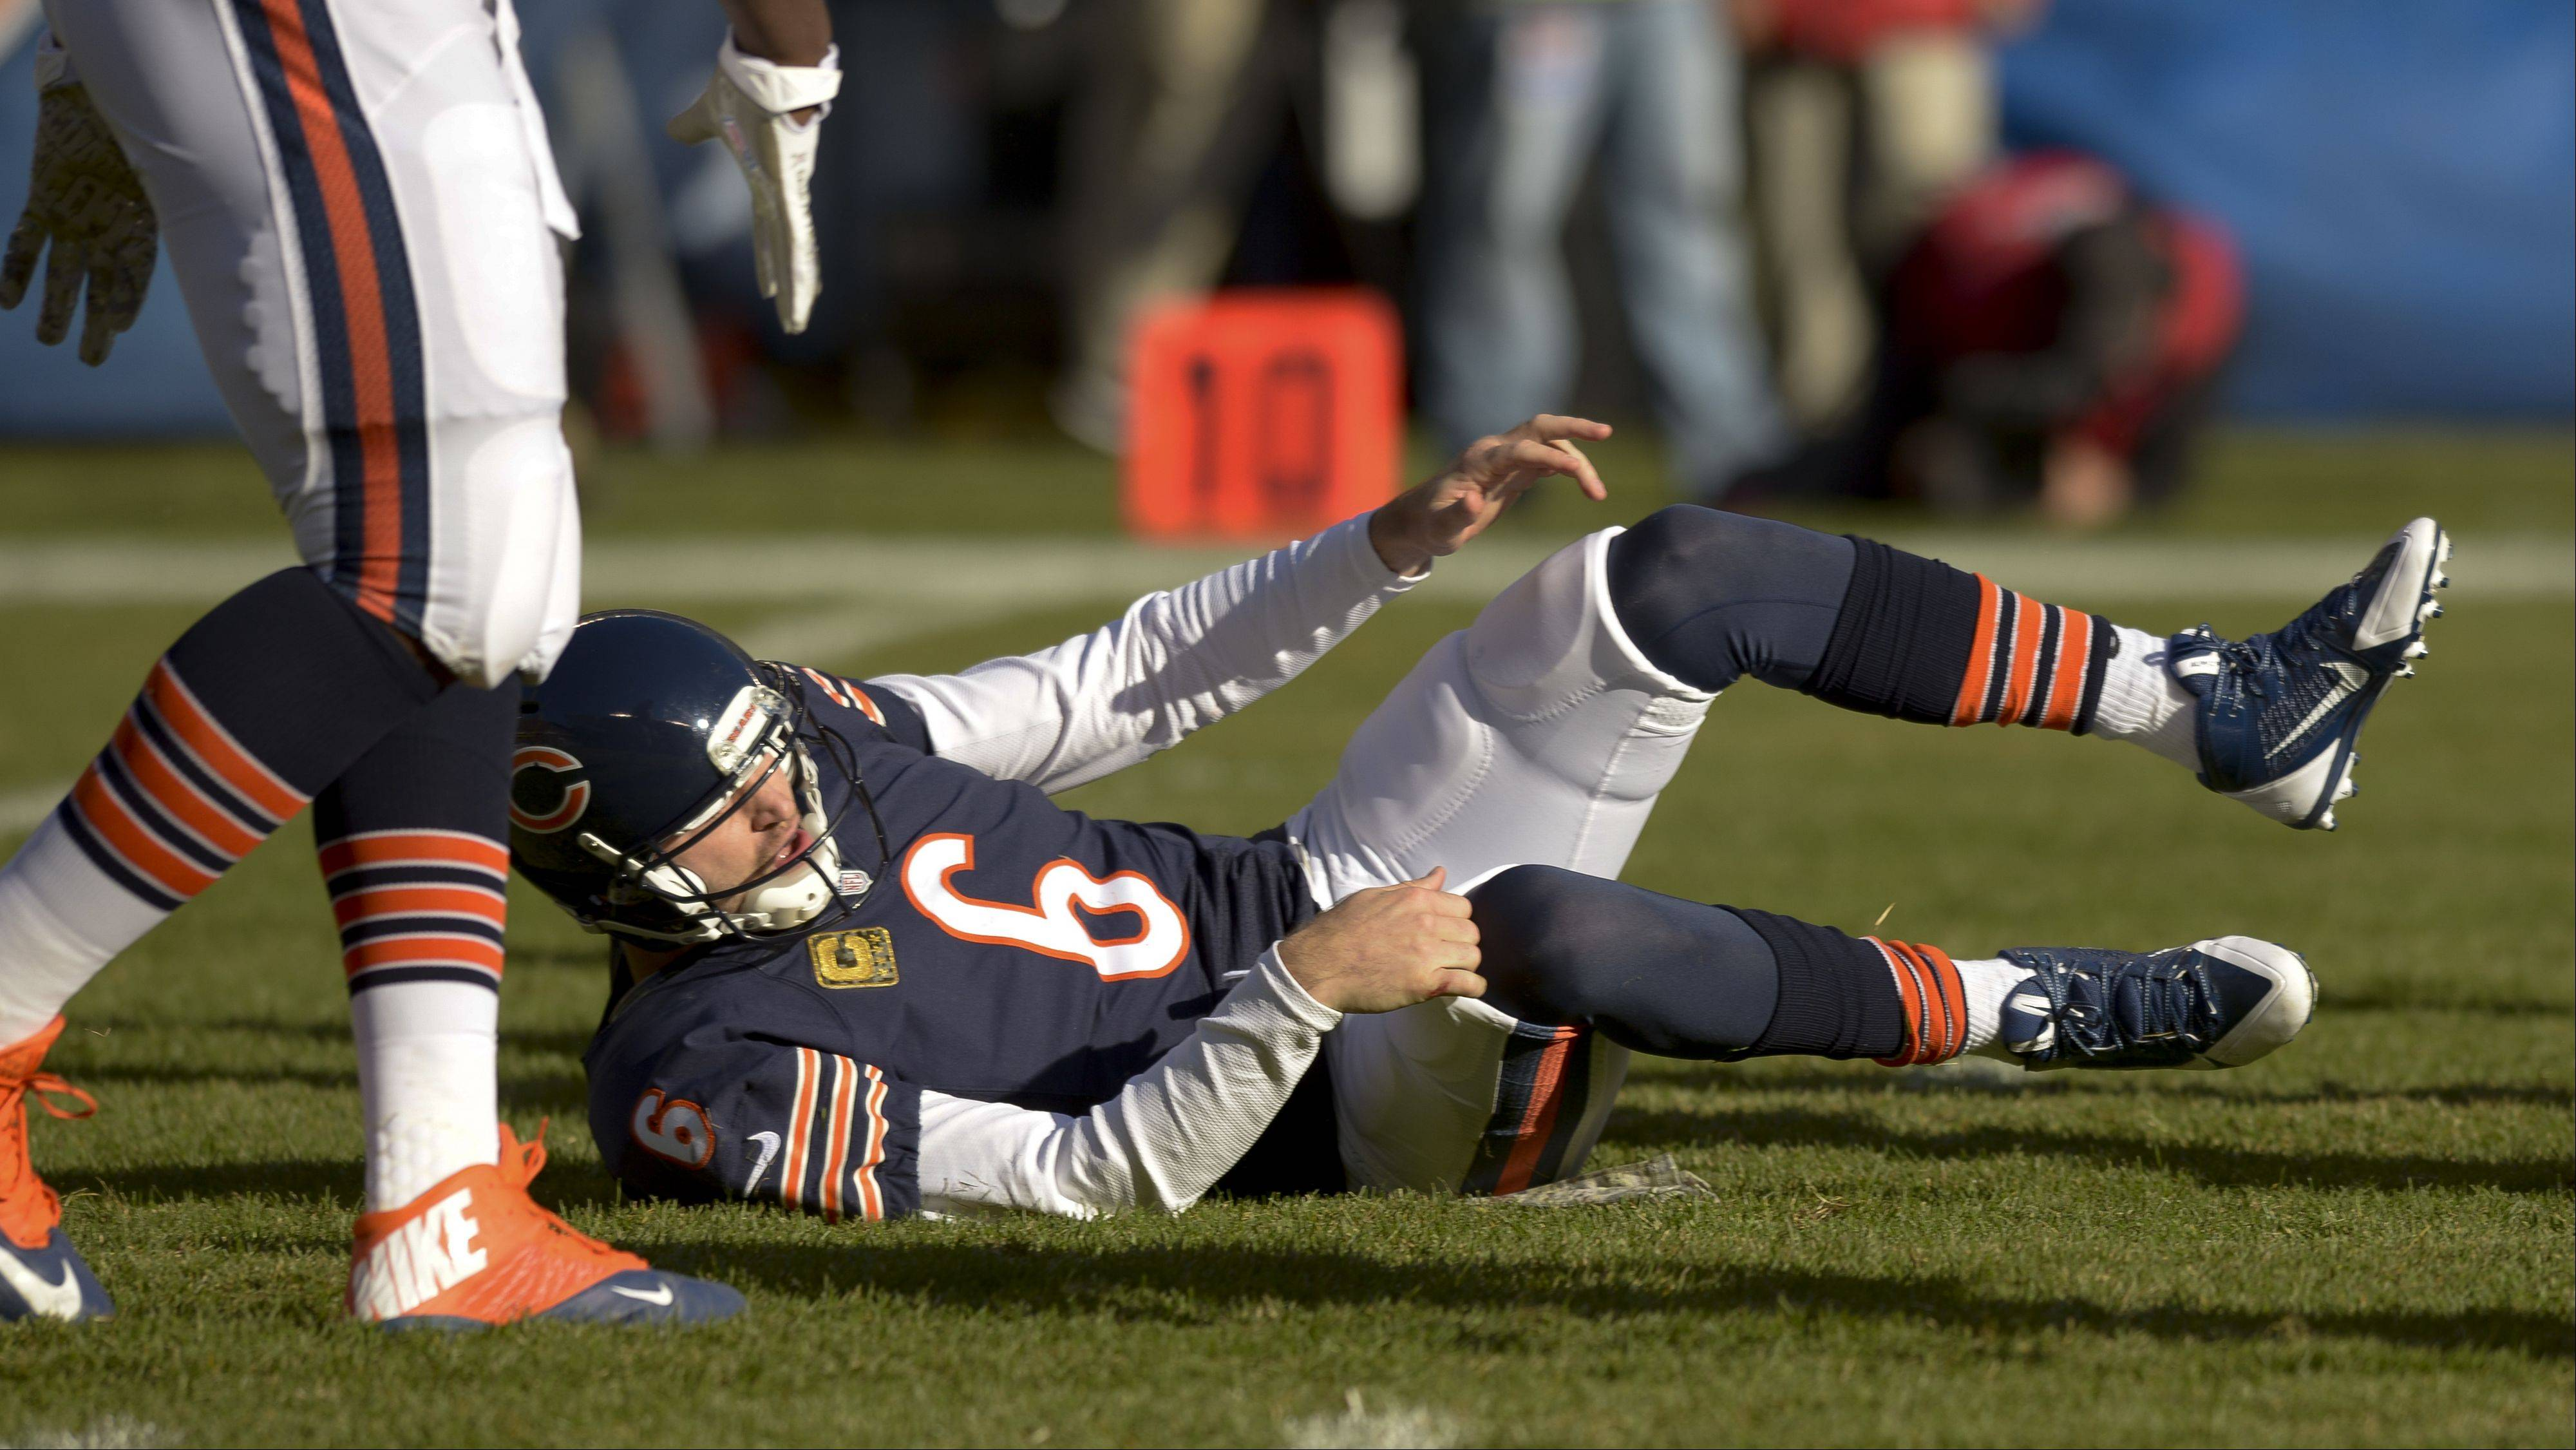 Chicago Bears quarterback Jay Cutler is slow to get up during the Bears 21-19 loss Sunday against the Detroit Lions at Soldier Field. Cutler would ultimately leave the game, and the Bears would leave their first place ranking behind.